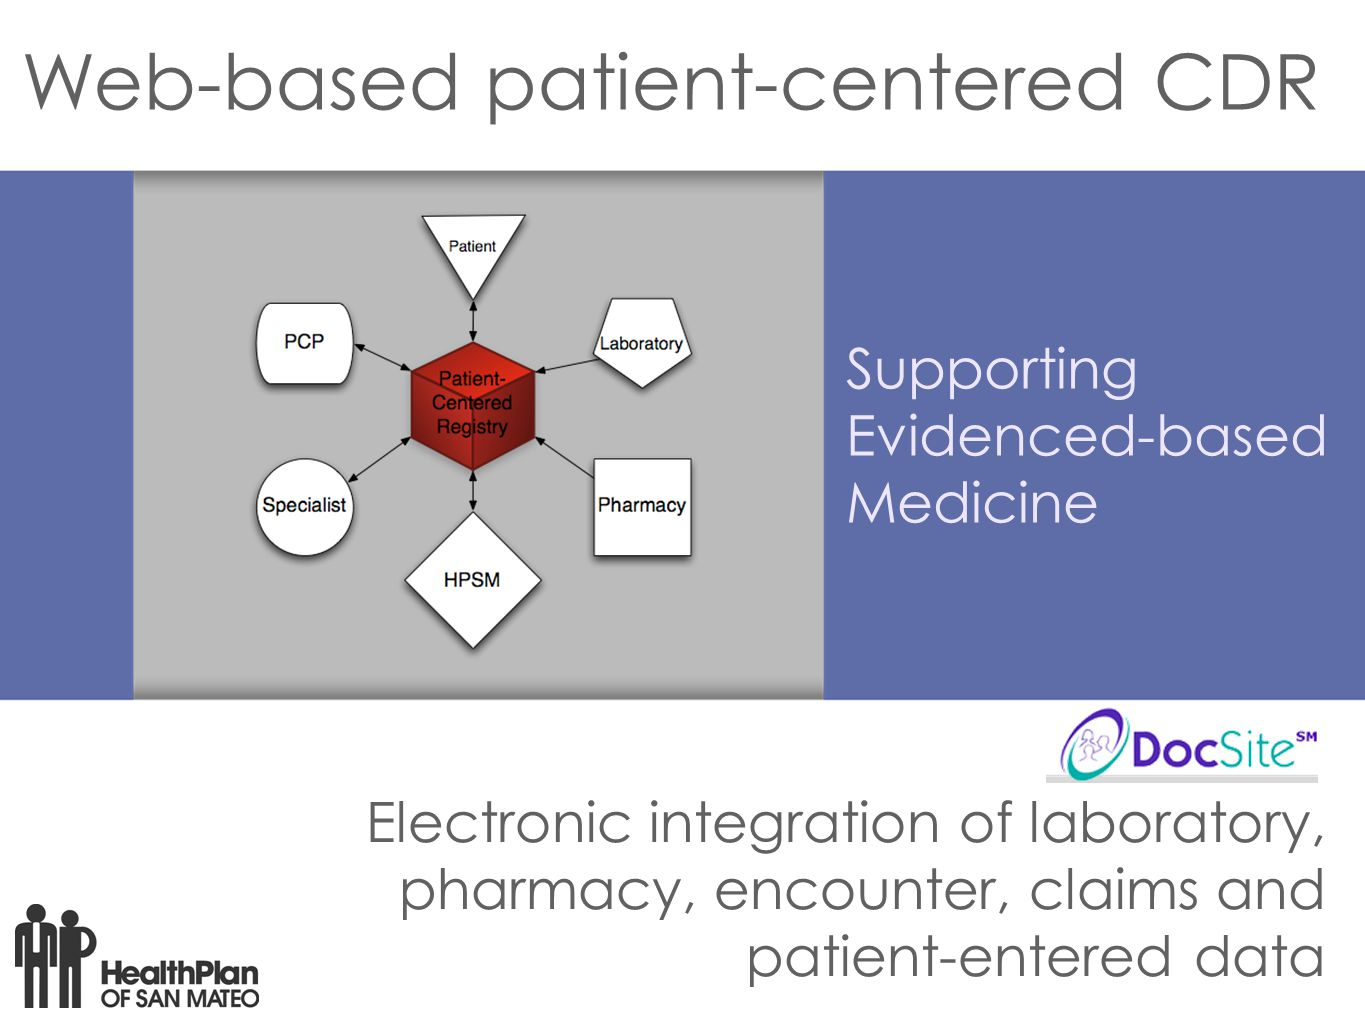 Web-based patient-centered CDR Electronic integration of laboratory, pharmacy, encounter, claims and patient-entered data Supporting Evidenced-based Medicine